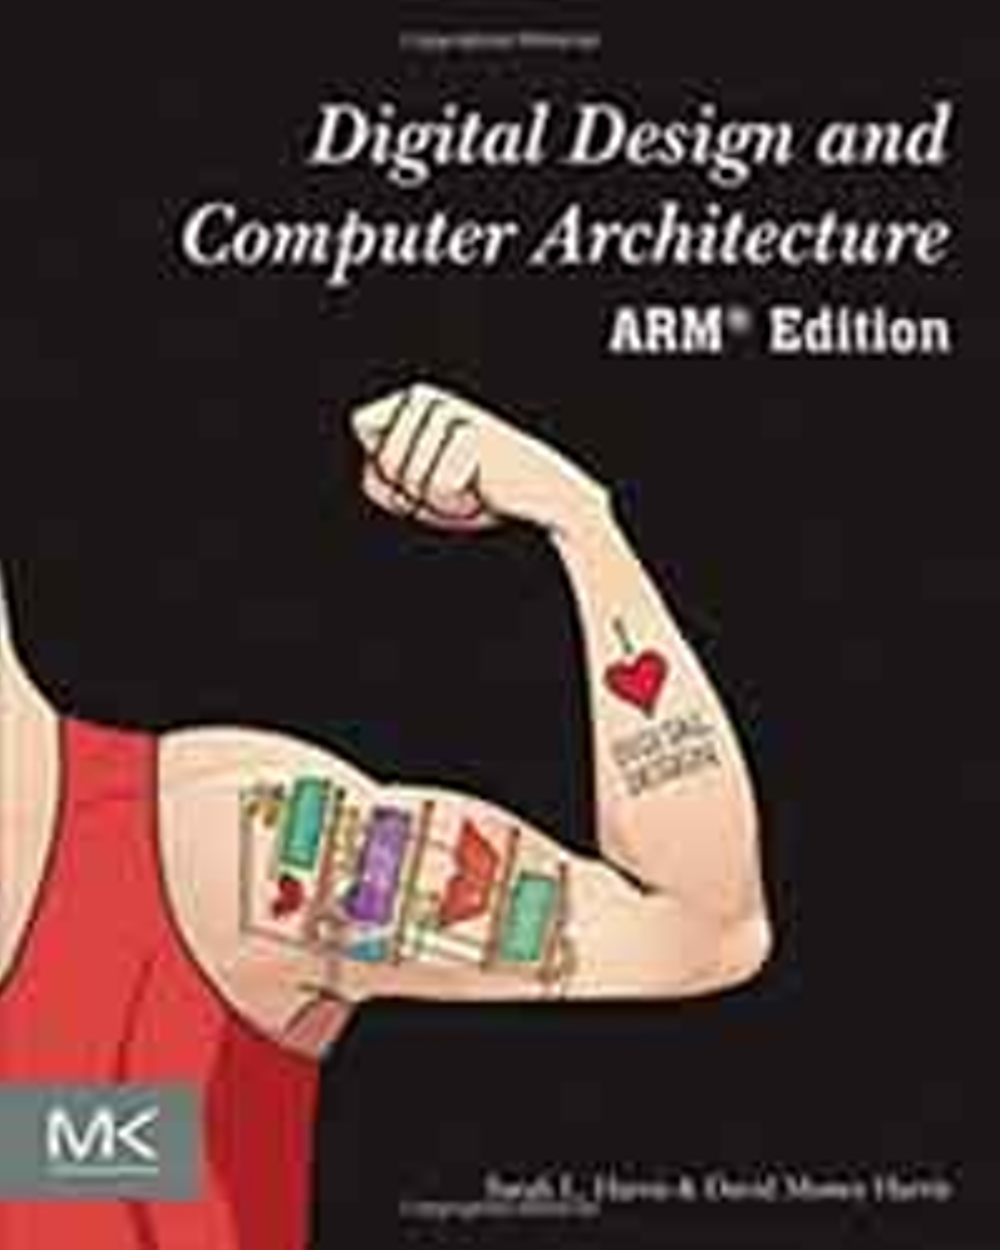 DIGITAL DESIGN AND COMPUTER ARCHITECTURE  ARM